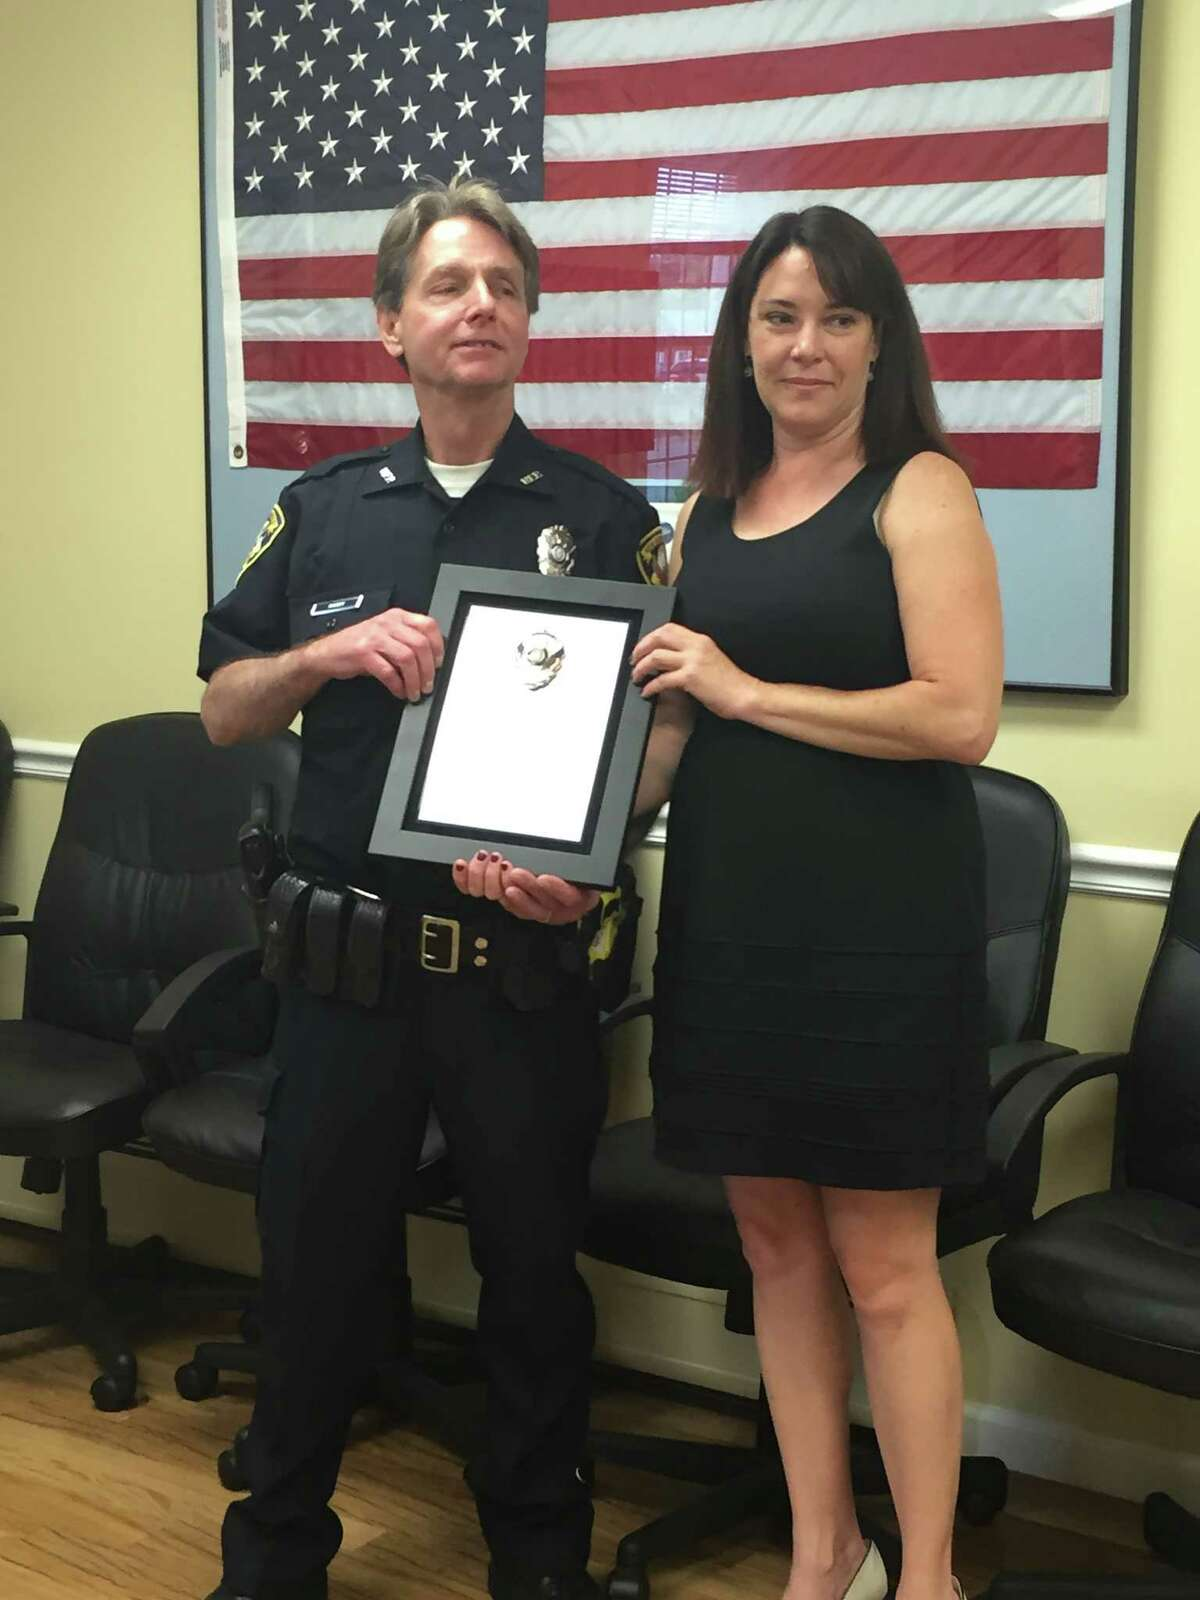 Kevin Casey (left) is presented a plaque by First Selectwoman Susan Chapman for his years of service. Casey is retiring after 35 years with the New Fairfield Police Department.